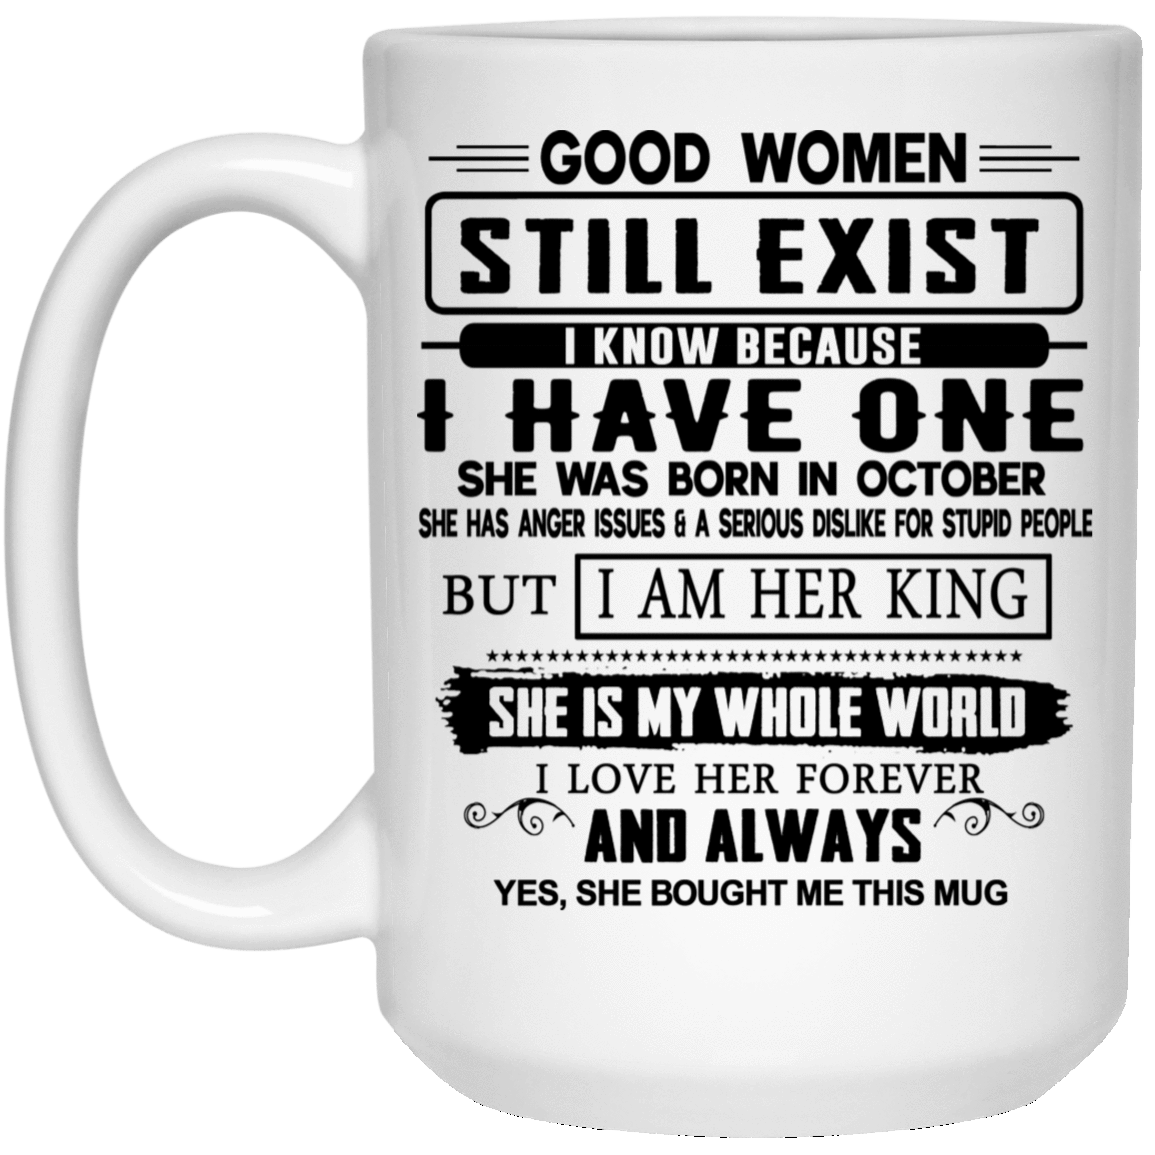 Good Women Still Exist I Have One He Was Born In October Mug 1032-9816-76399334-47456 - Tee Ript